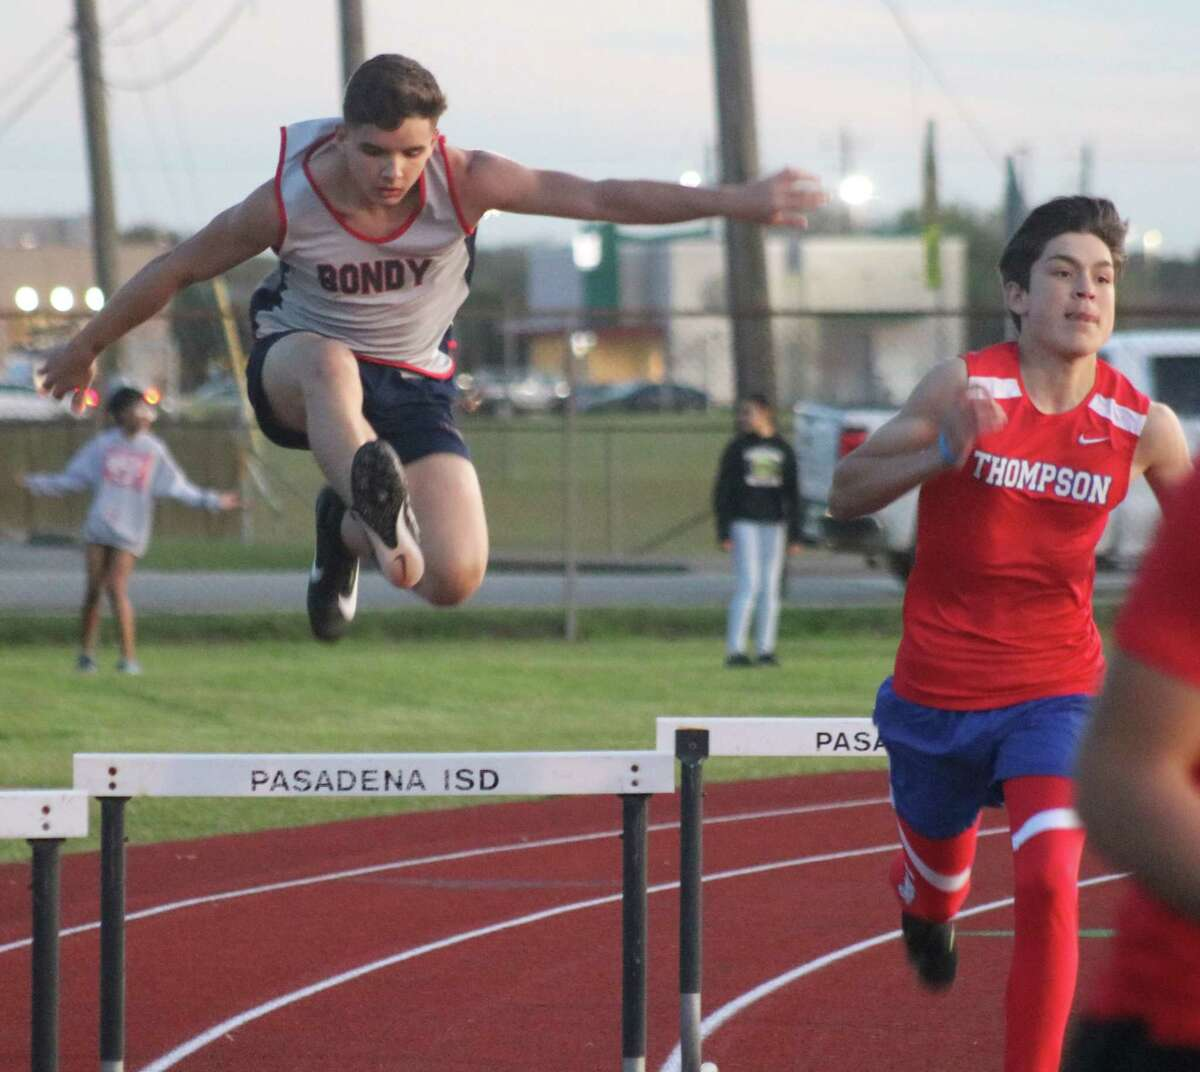 Bondy's Fabian Garza easily clears another set of hurdles during one of the events at the district track meet last week. He scored four points in the 300-meter hurdles.